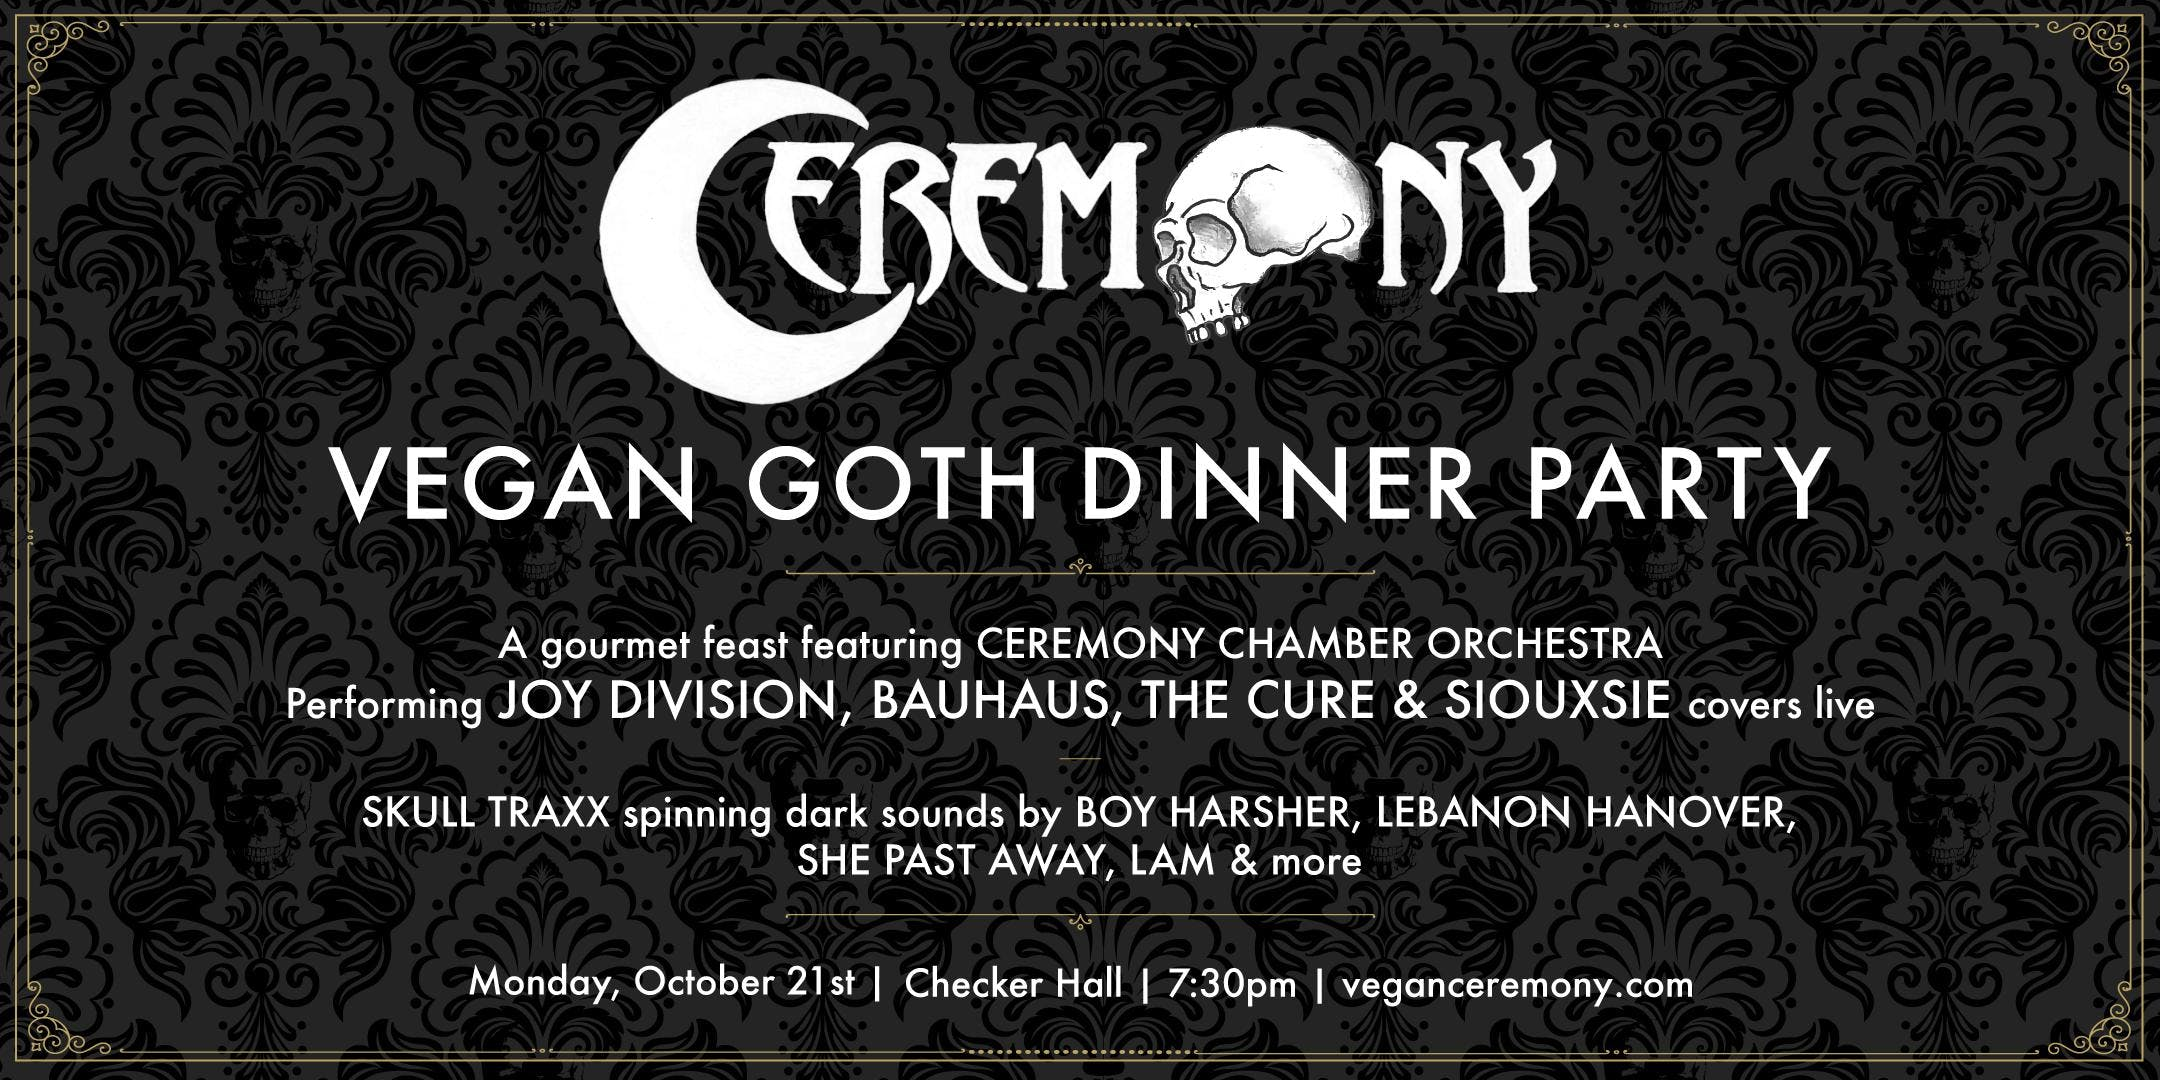 Vegan Goth Dinner Party